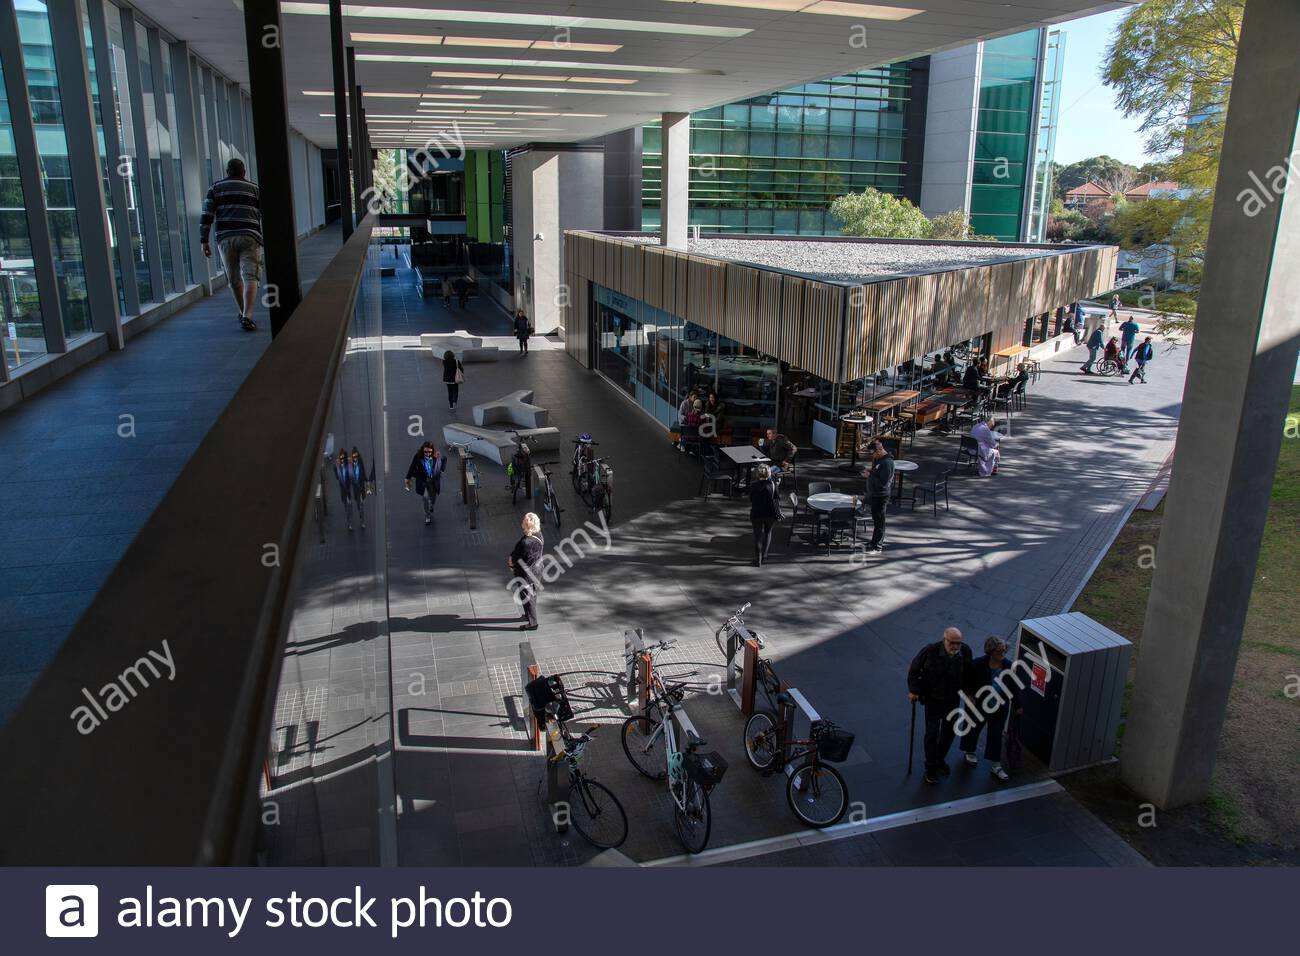 Main Entry Concourse to Fiona Stanley Hospital with Café Stock Photo